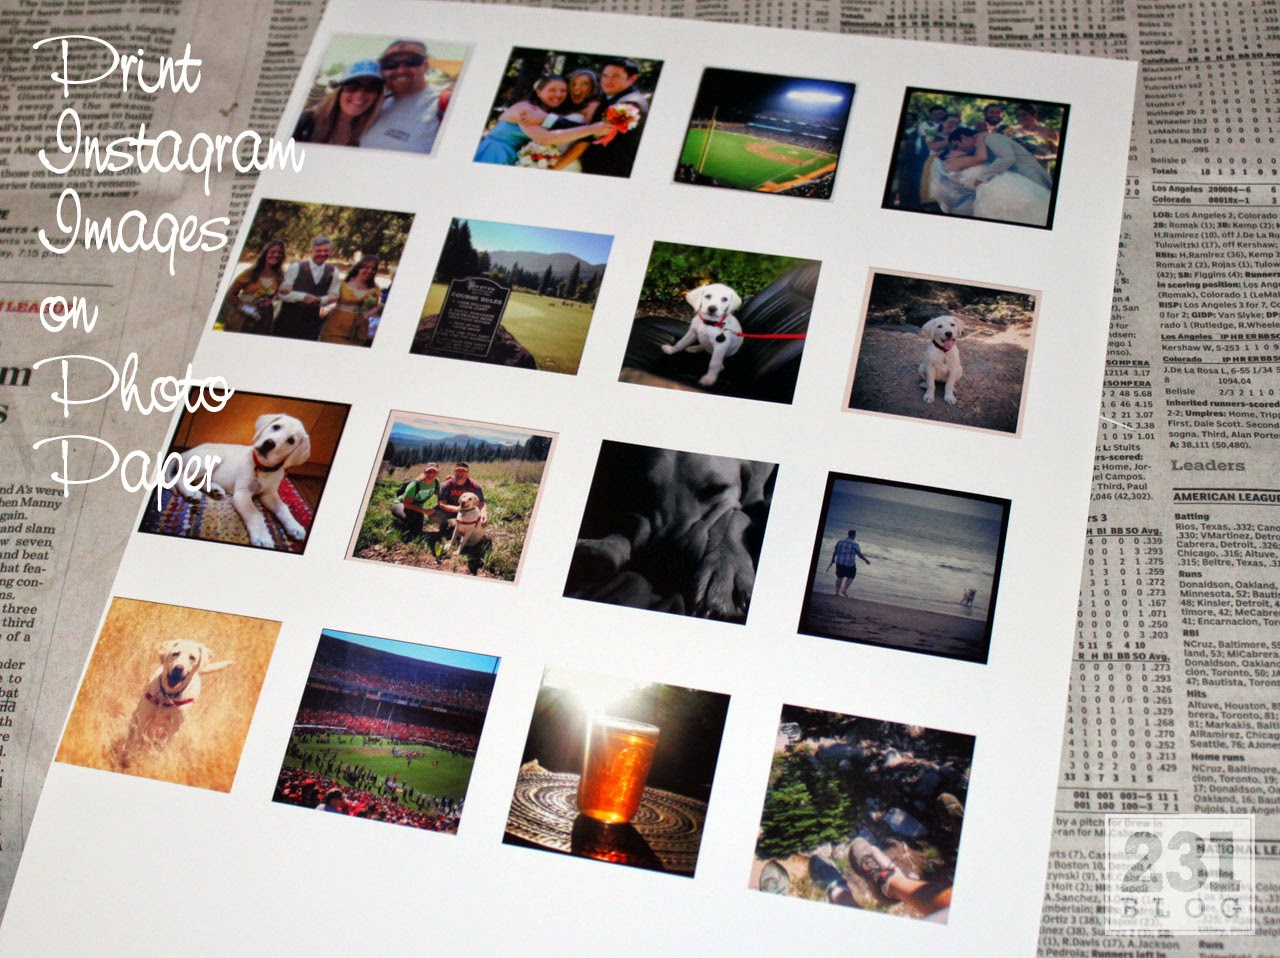 print instagram magnets at home